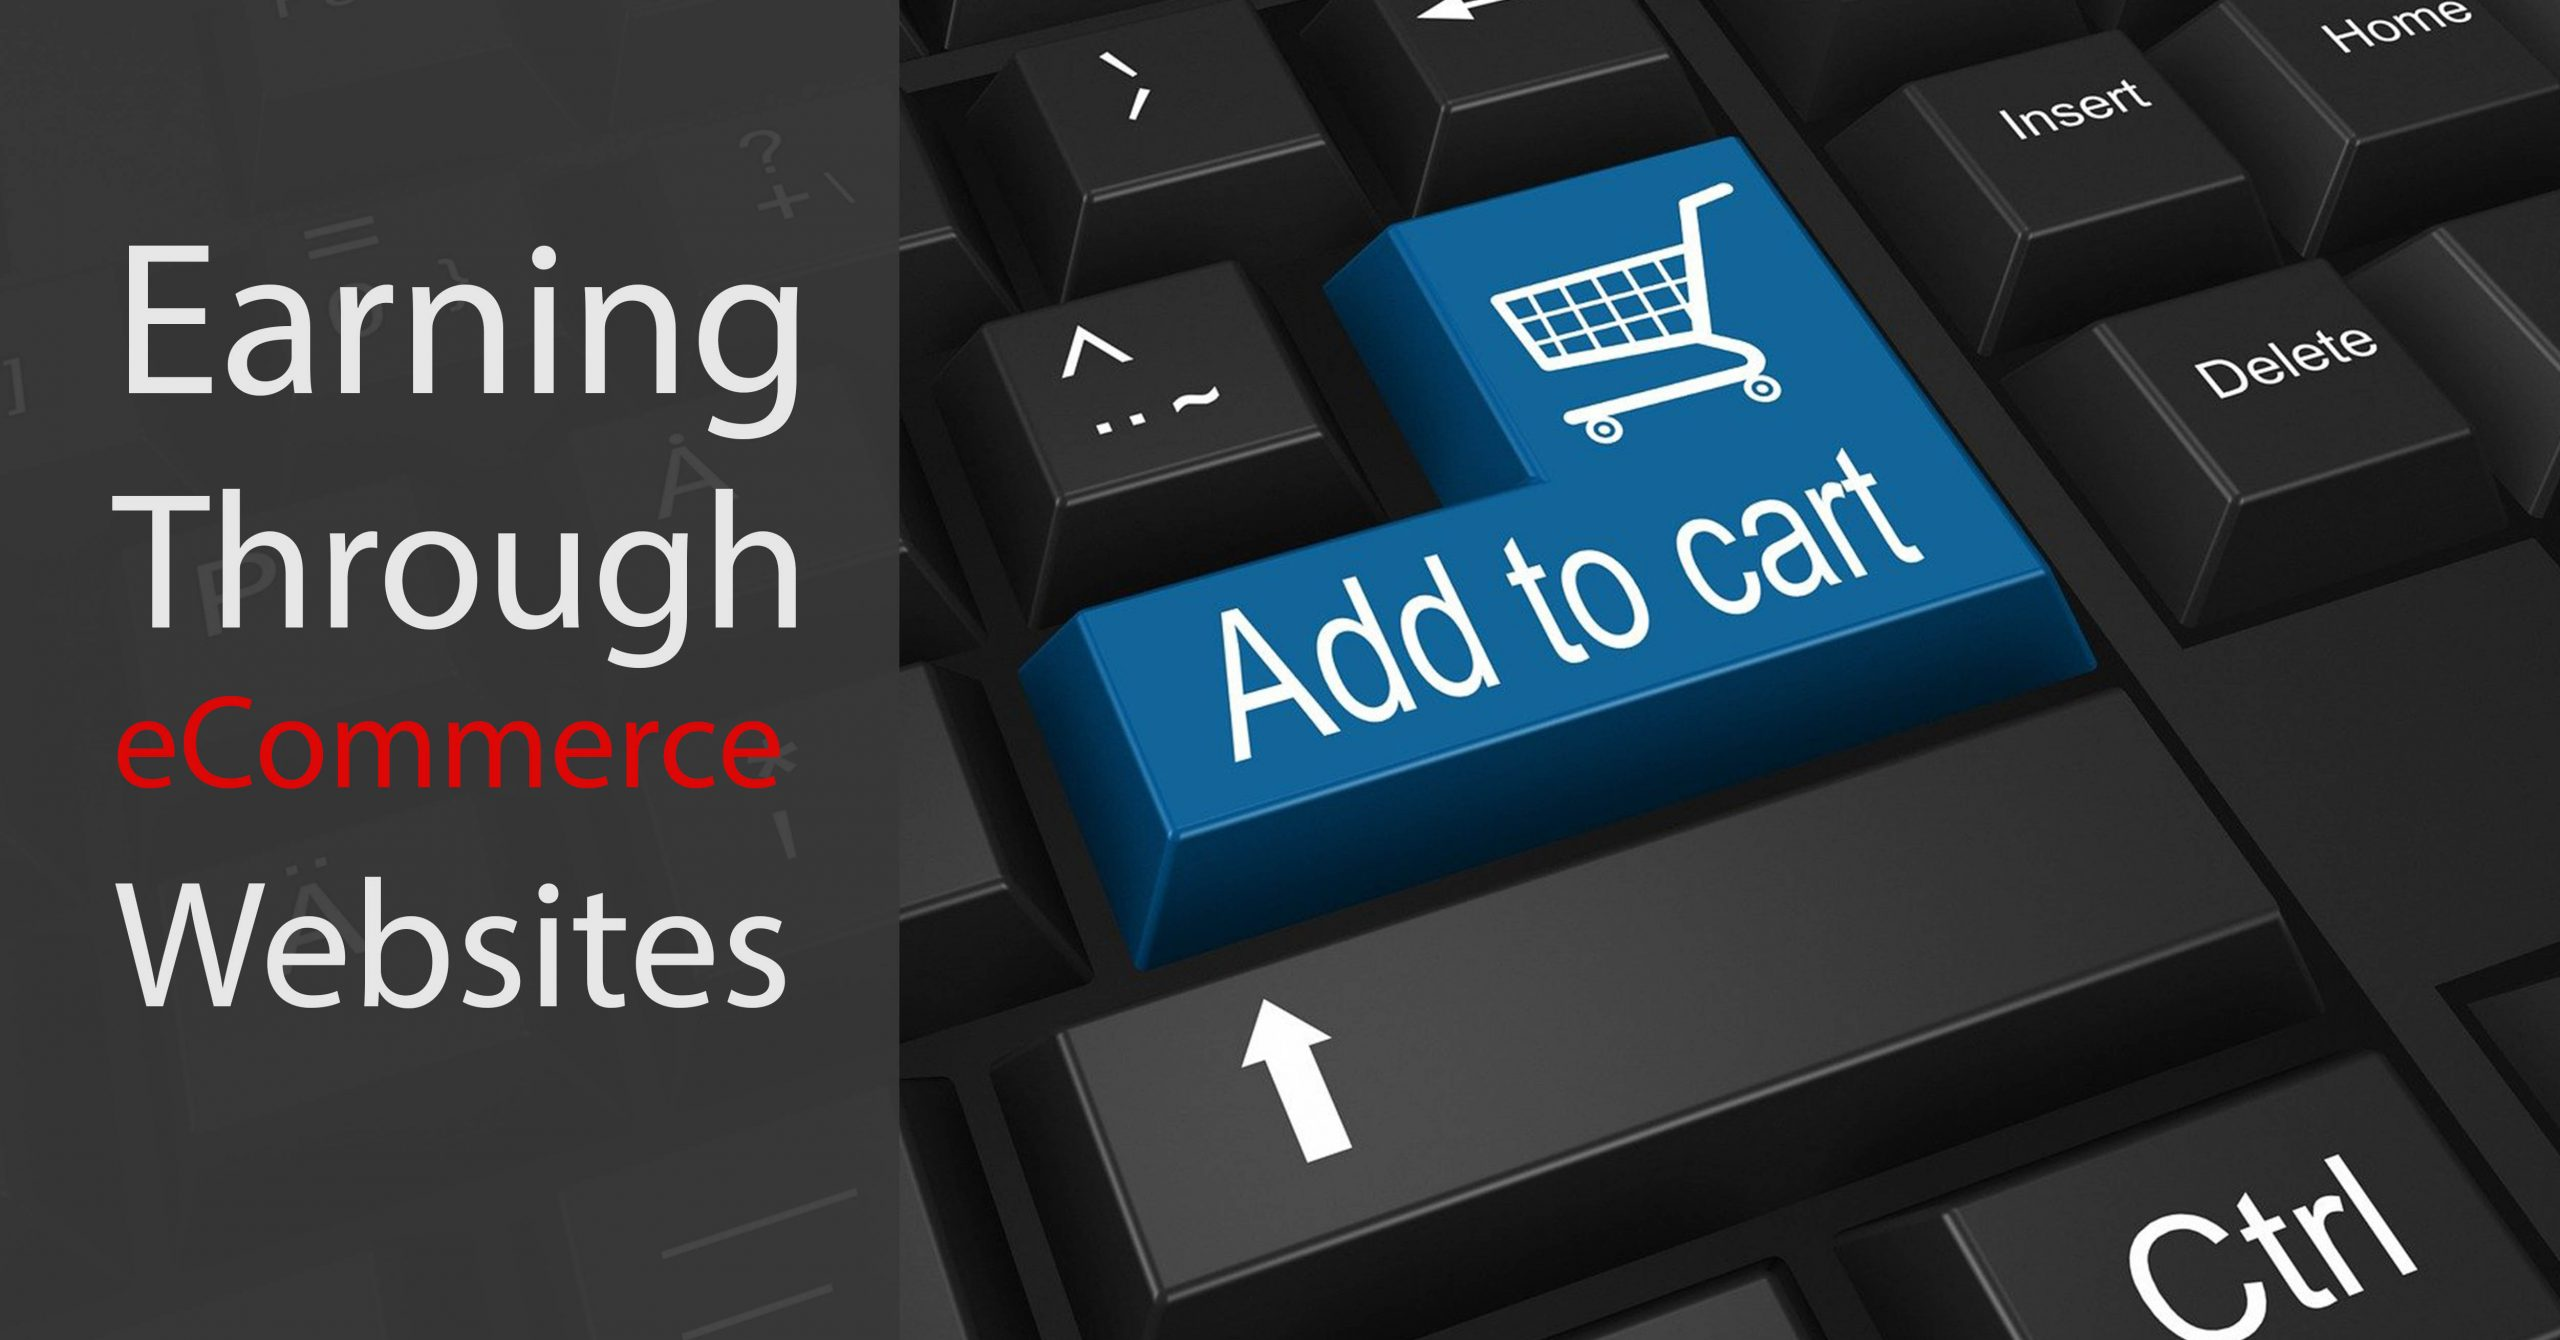 How to do earning through eCommerce websites